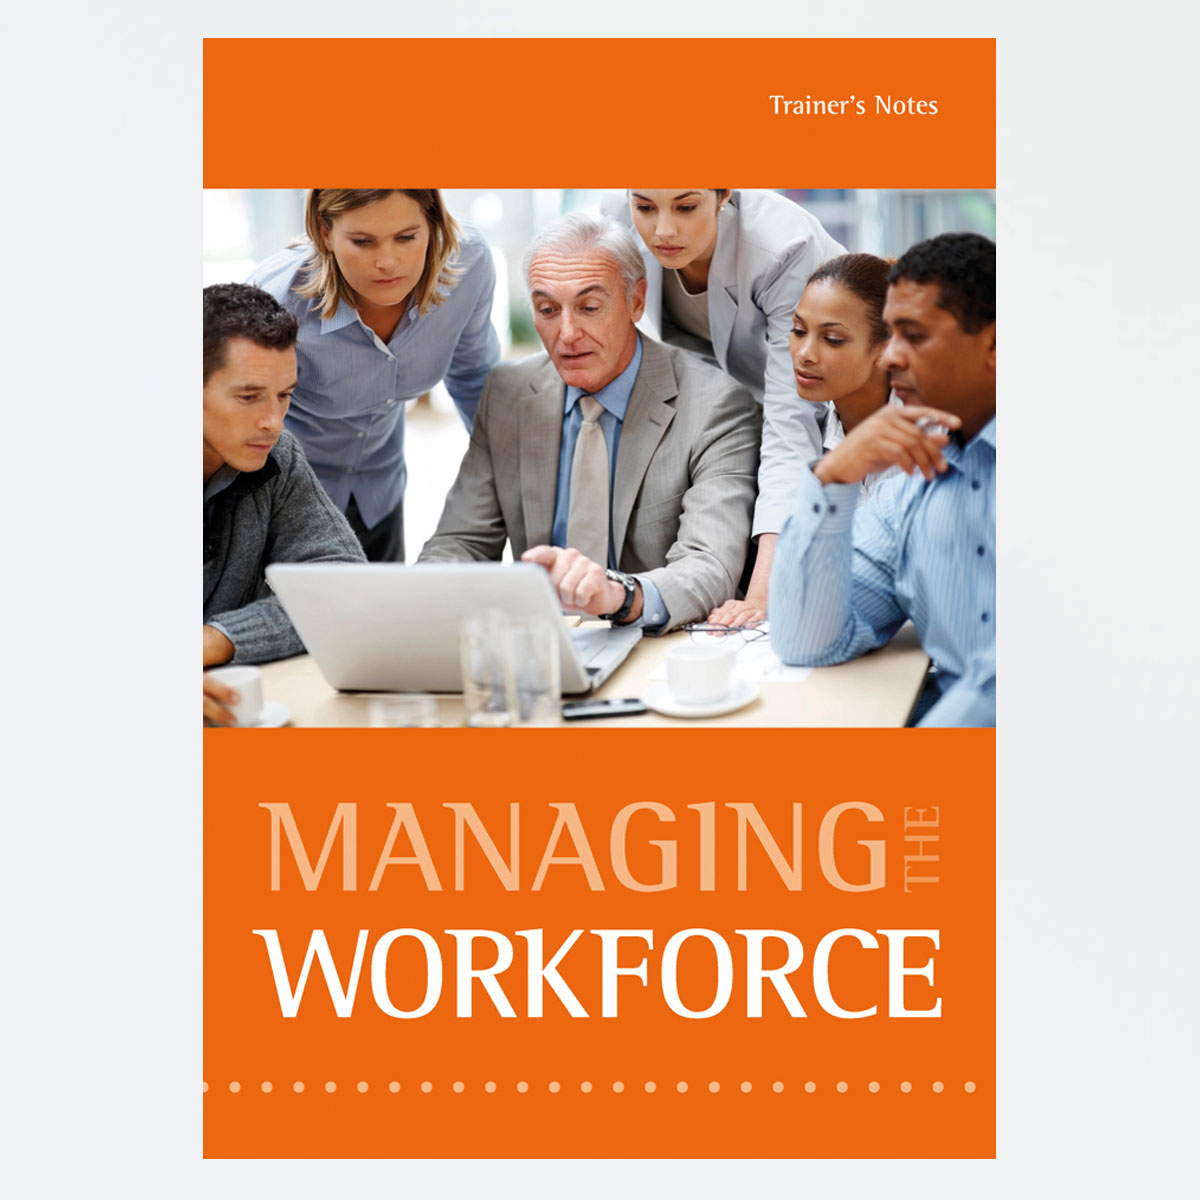 Managing the Workforce | Managing People Training Activity